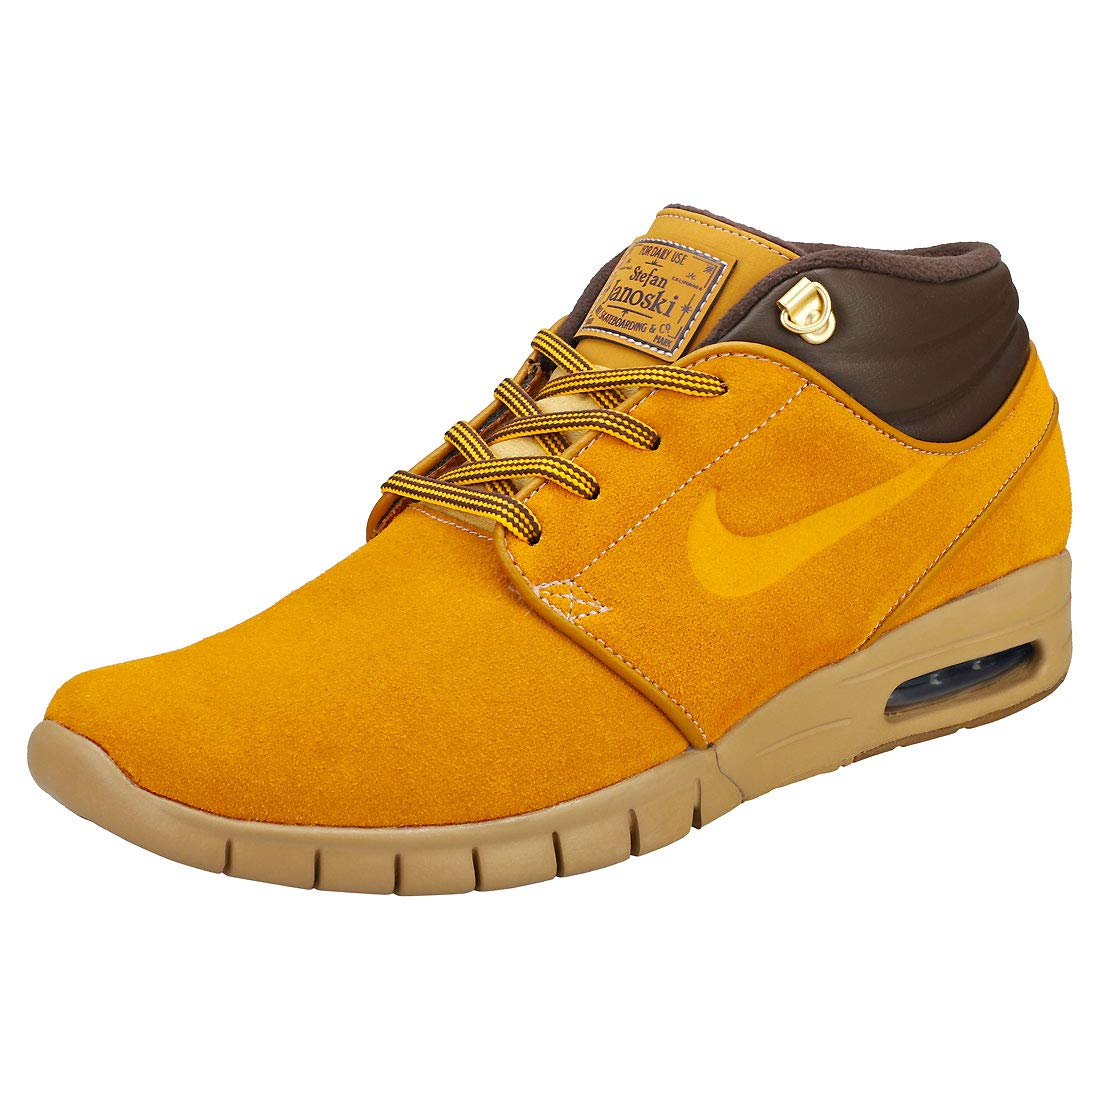 save off 58465 1a85a Amazon.com   Nike Stefan Janoski MAX MID PRM Mens Skateboarding-Shoes  AV3610   Shoes